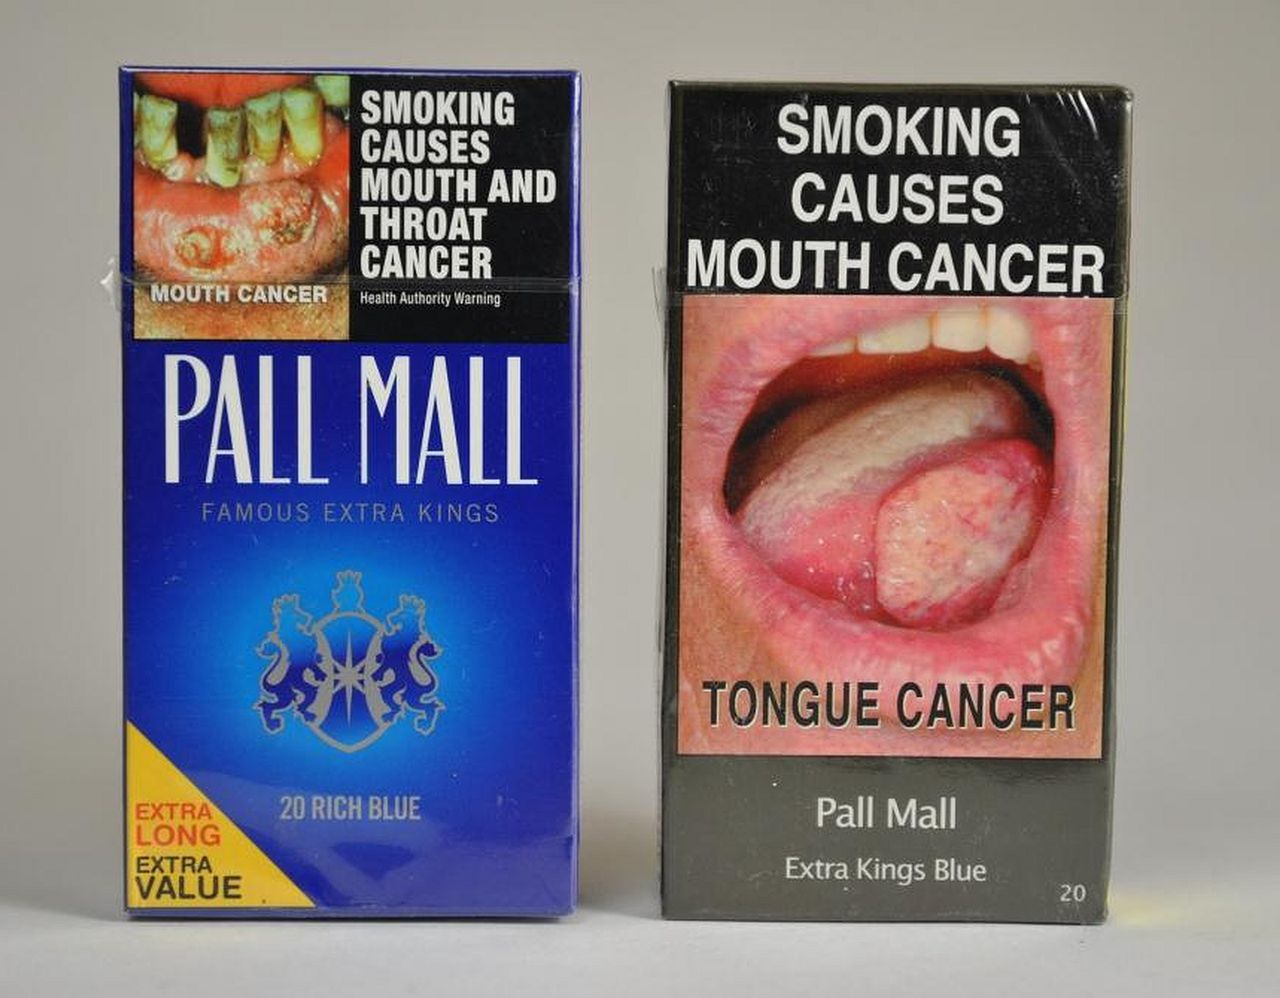 Much does pack Benson Hedges cigarettes cost New Jersey